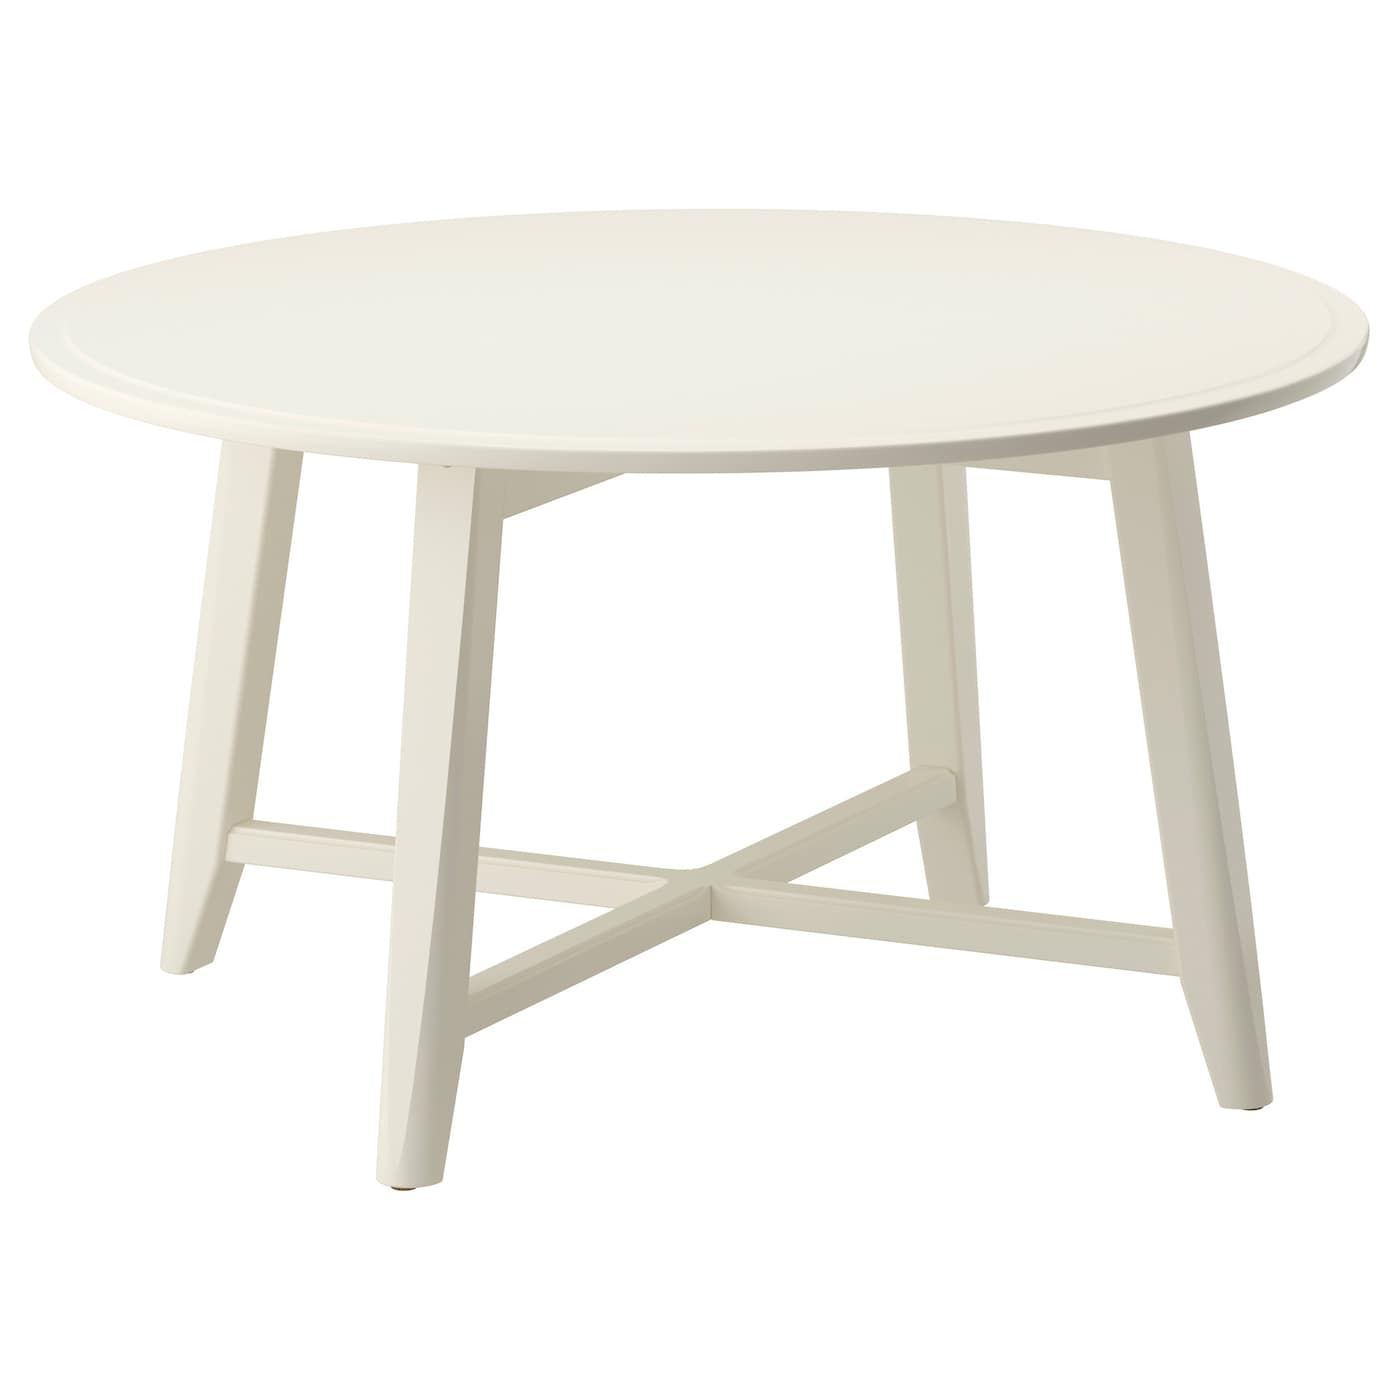 Kragsta table basse blanc 90 cm ikea - Table basse en plastique ...